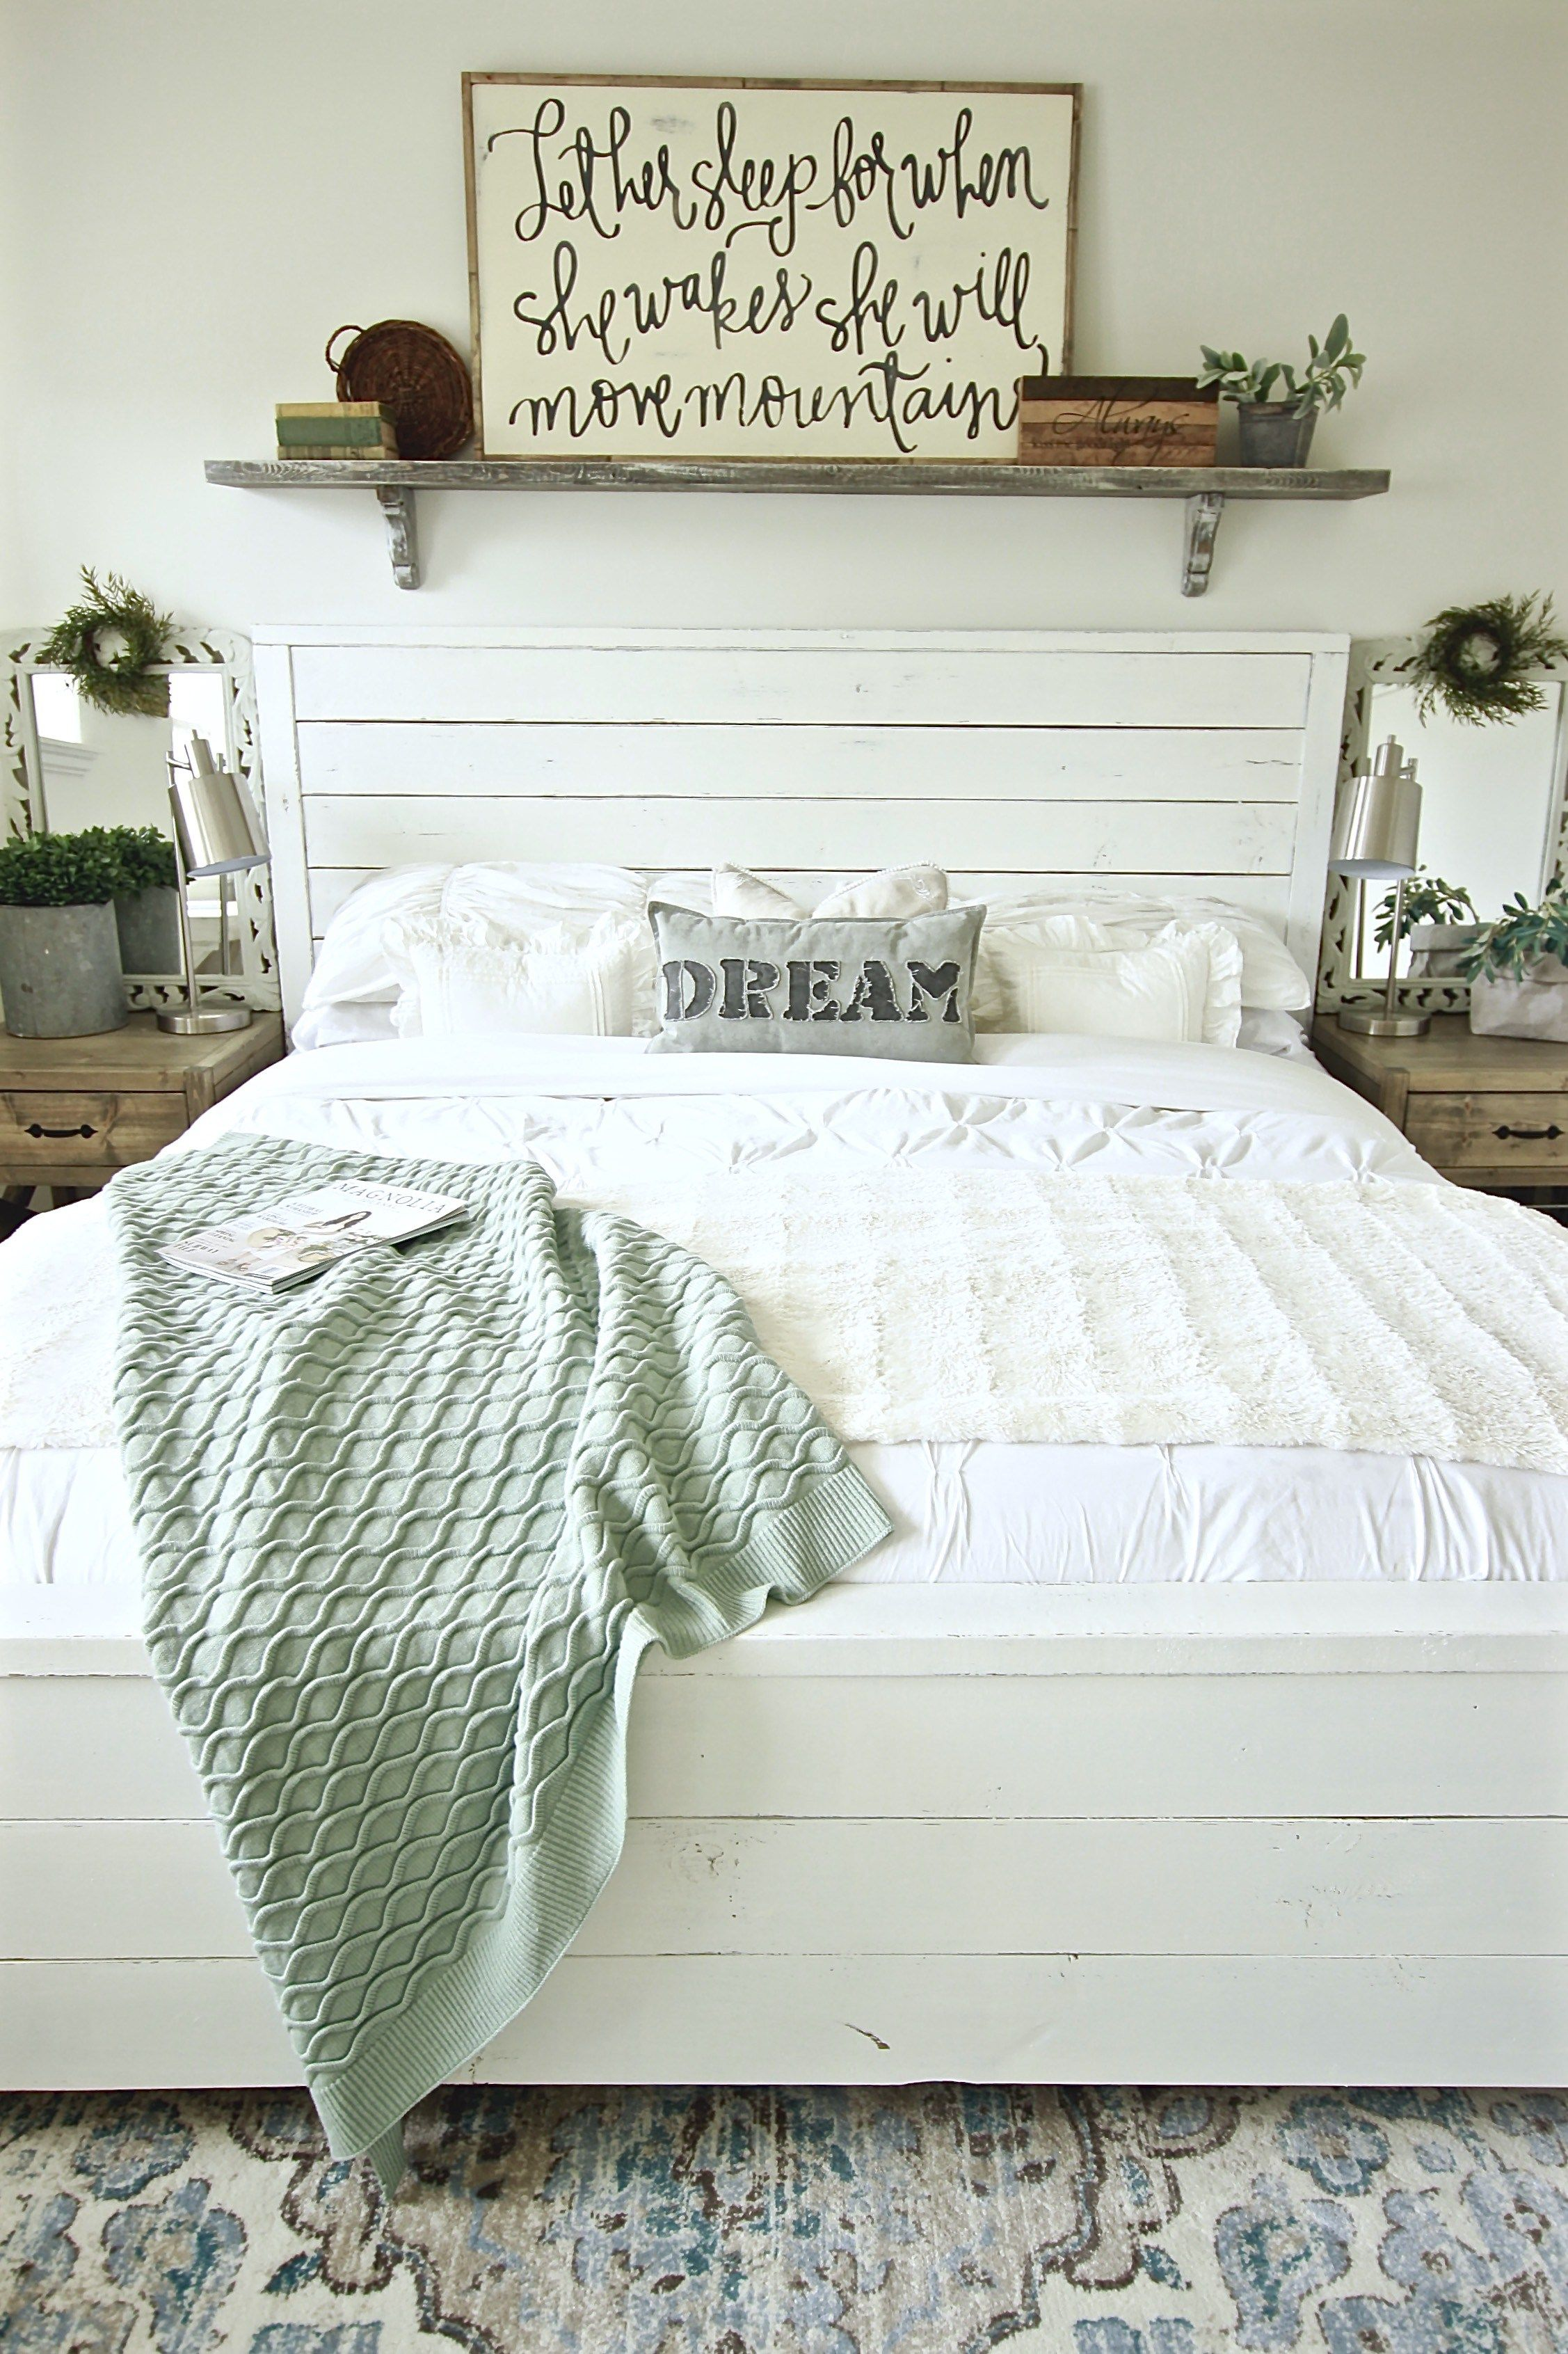 Our DIY Wall Shelf Above Our Bed  Under 15 bucks and takes minute to     Our DIY Wall Shelf Above Our Bed  Under 15 bucks and takes minute to make   Gorgeous Farmhouse Master Bedroom WhiteonWHiteonWhite  www theruggedrooster com